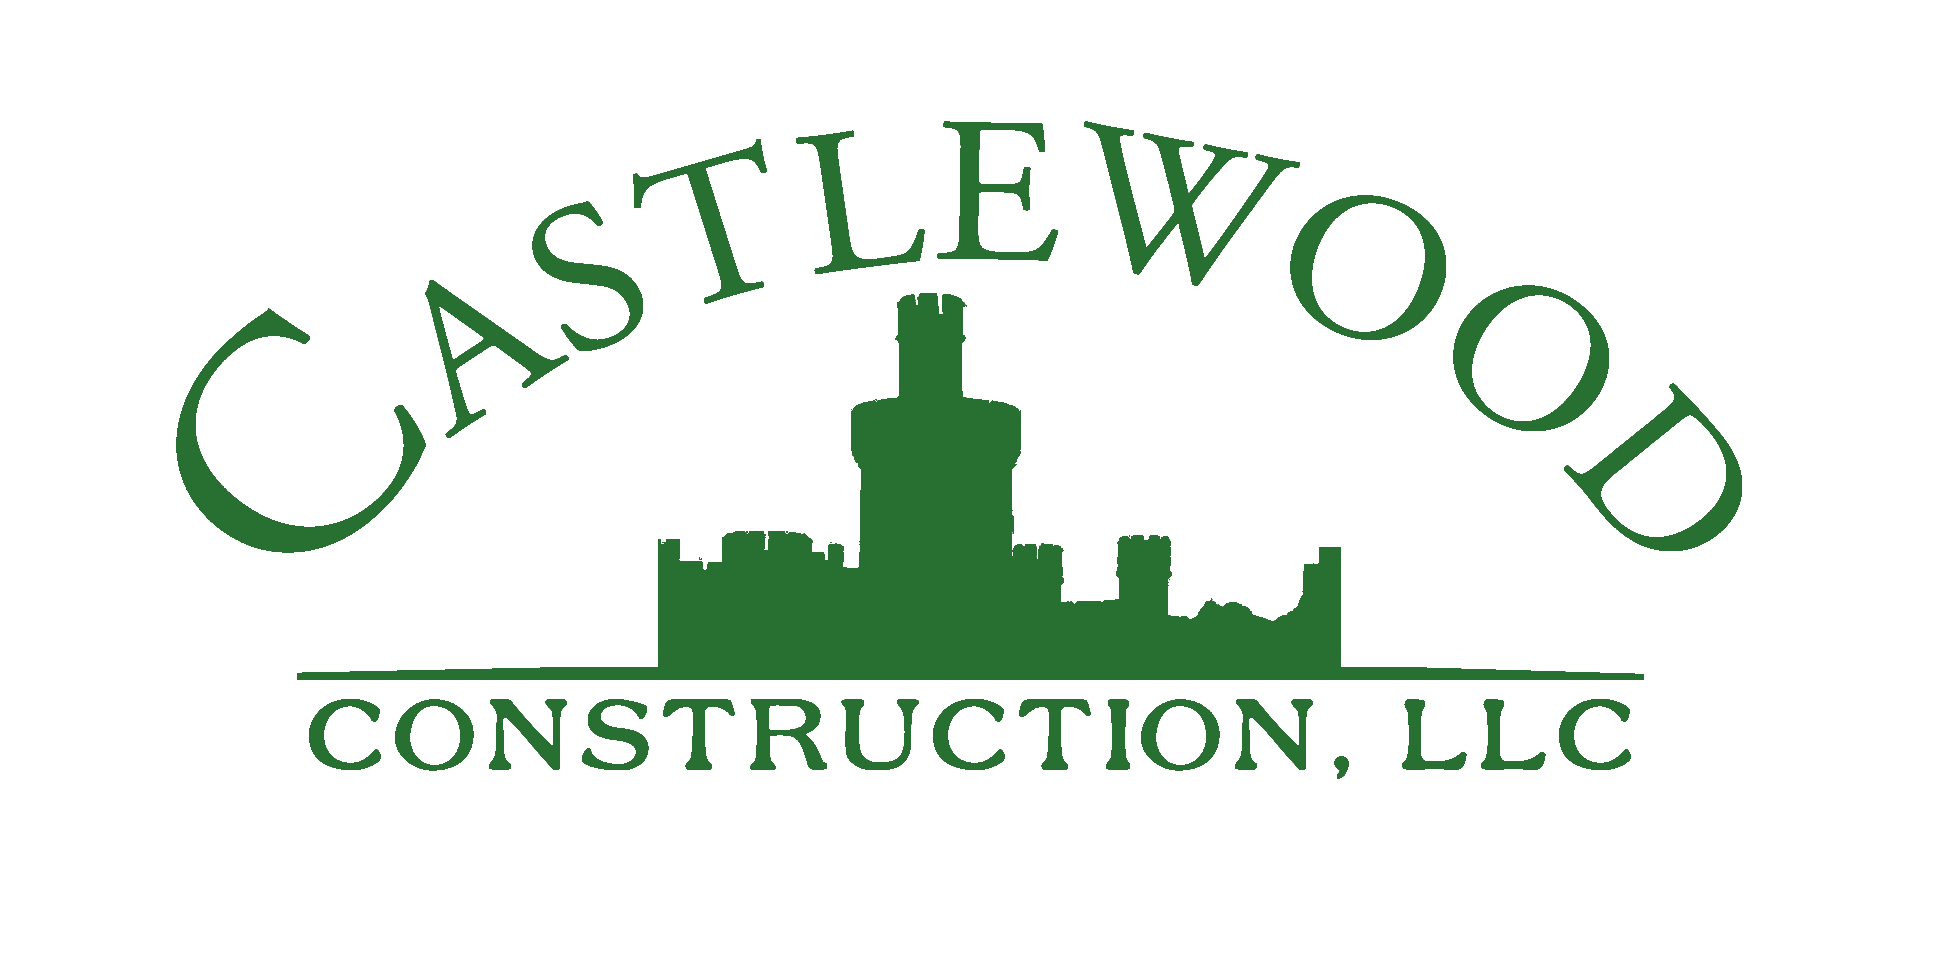 Castlewood Construction, LLC